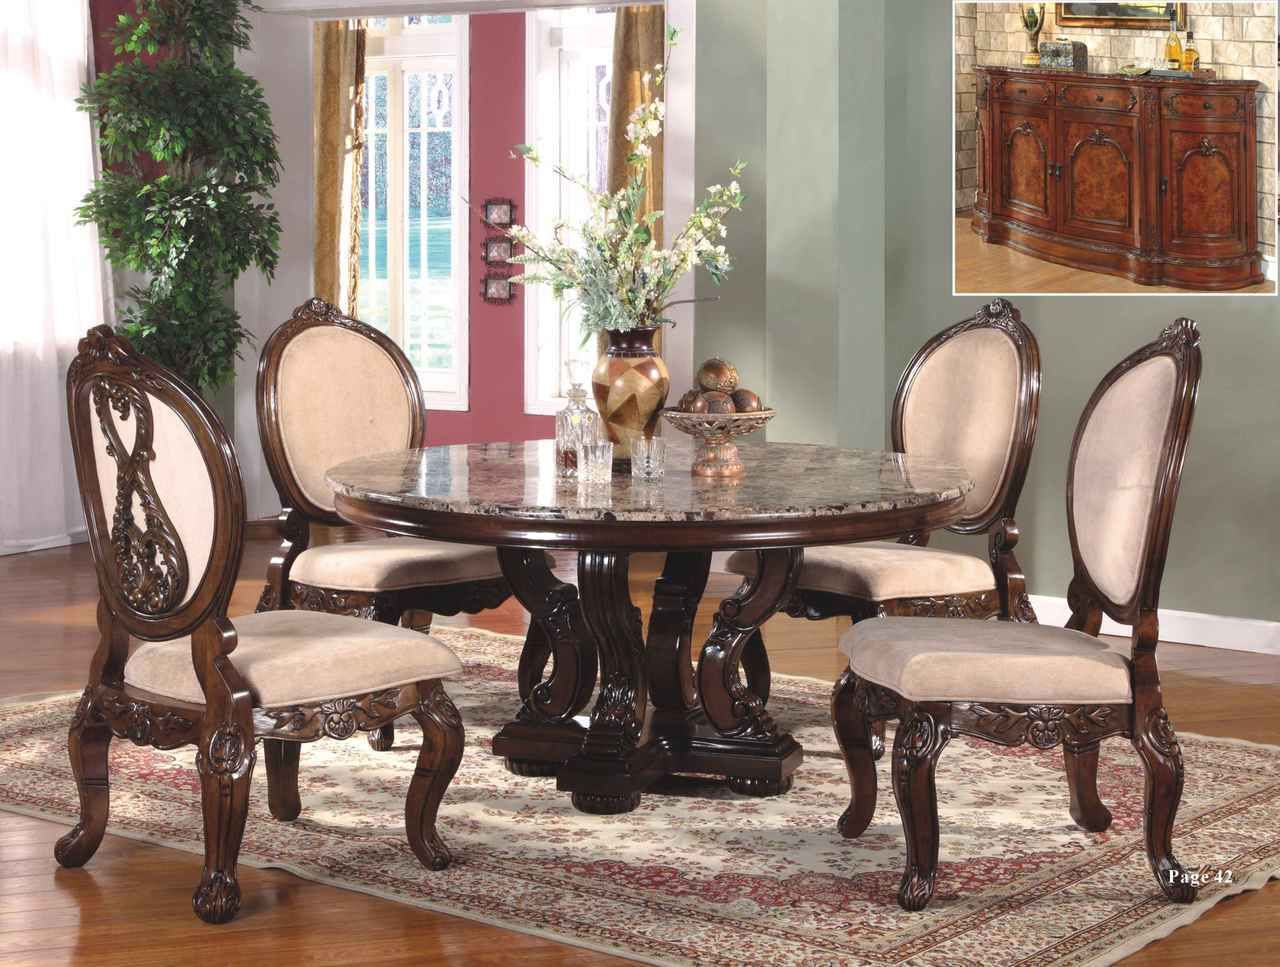 Marbella 95 Antique Brown Cherry 7 Pc Dining Set Round Dining Room Sets French Country Dining Table French Country Dining Room Set